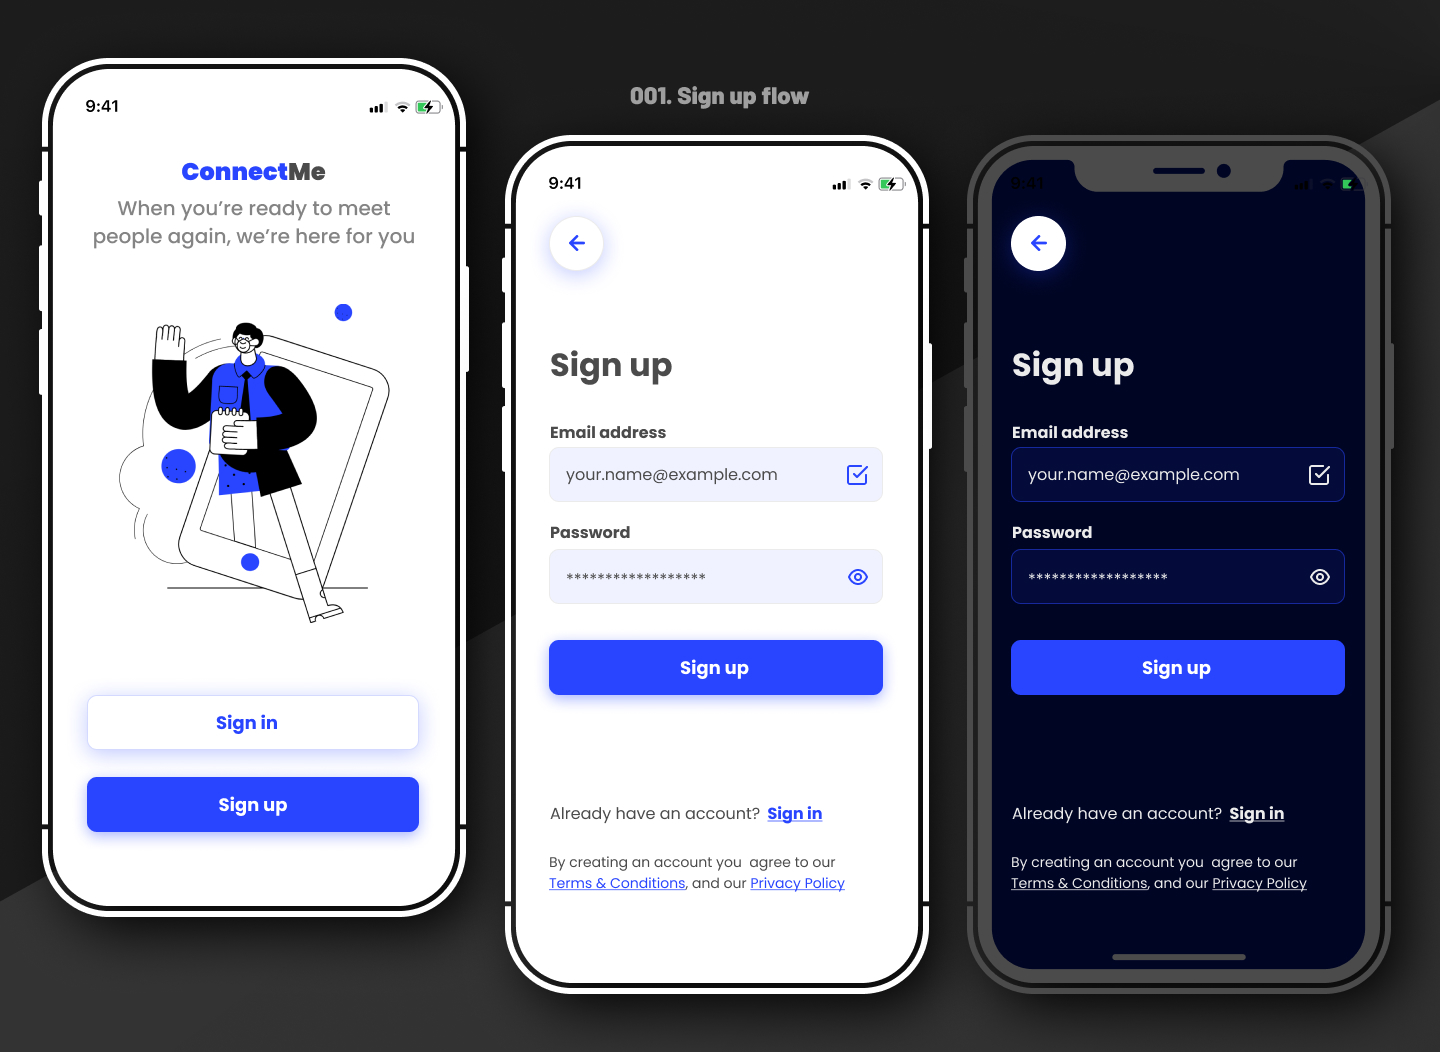 Sign up flow and UI design for a fictional app